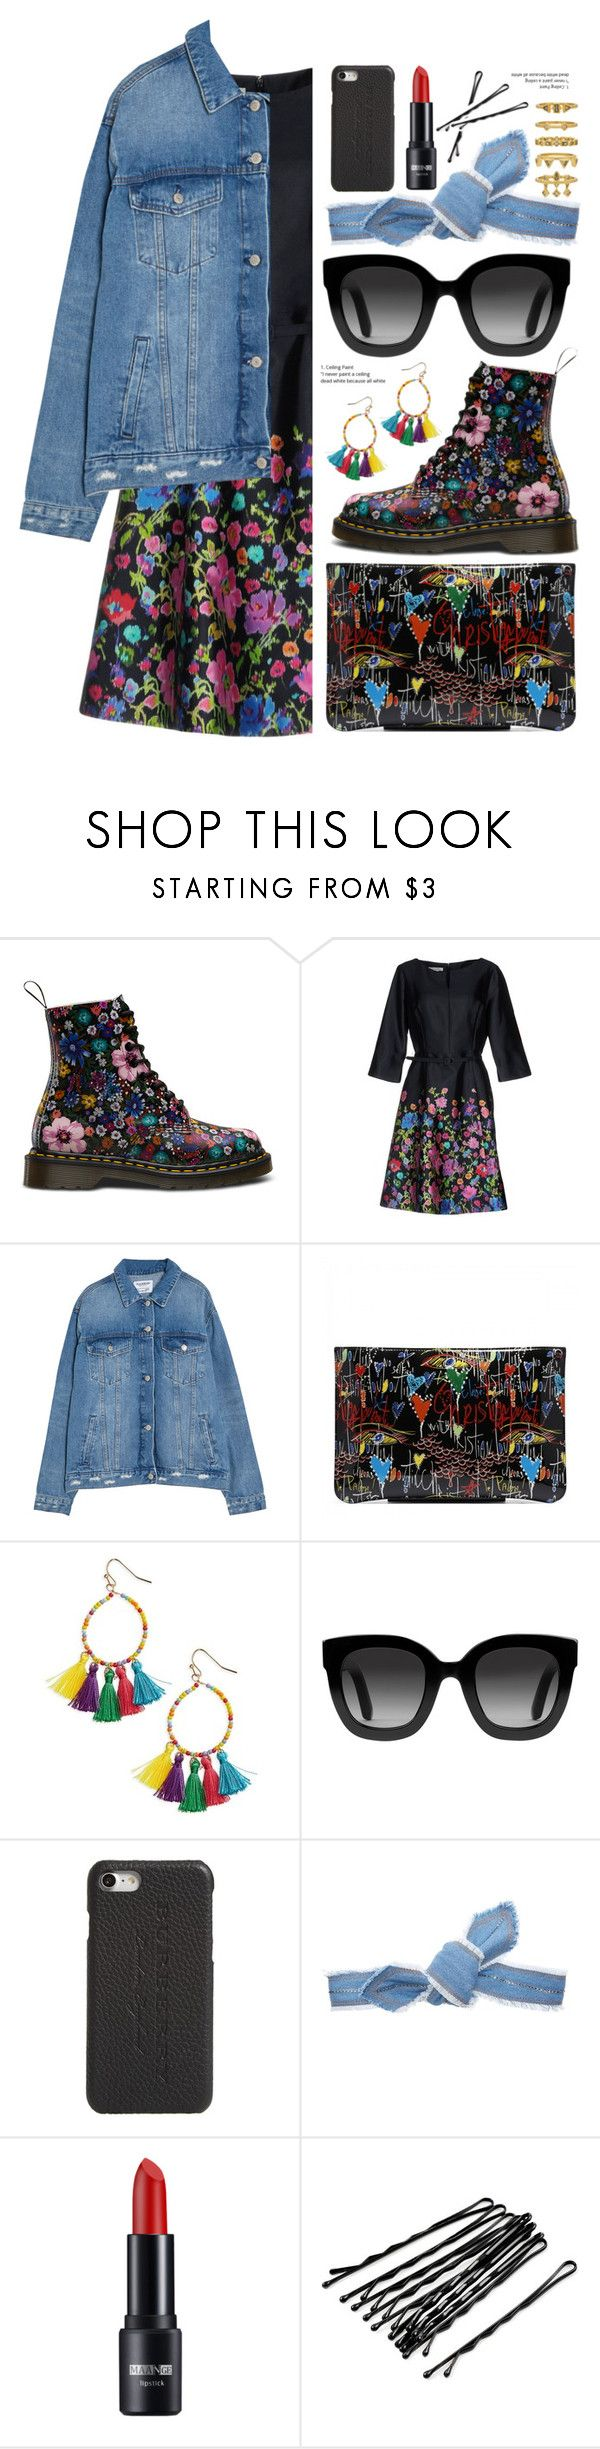 """""""Floral with denim"""" by fcris7176 ❤ liked on Polyvore featuring Oscar de la Renta, Panacea, Gucci, Burberry, Colette Malouf and Luv Aj"""